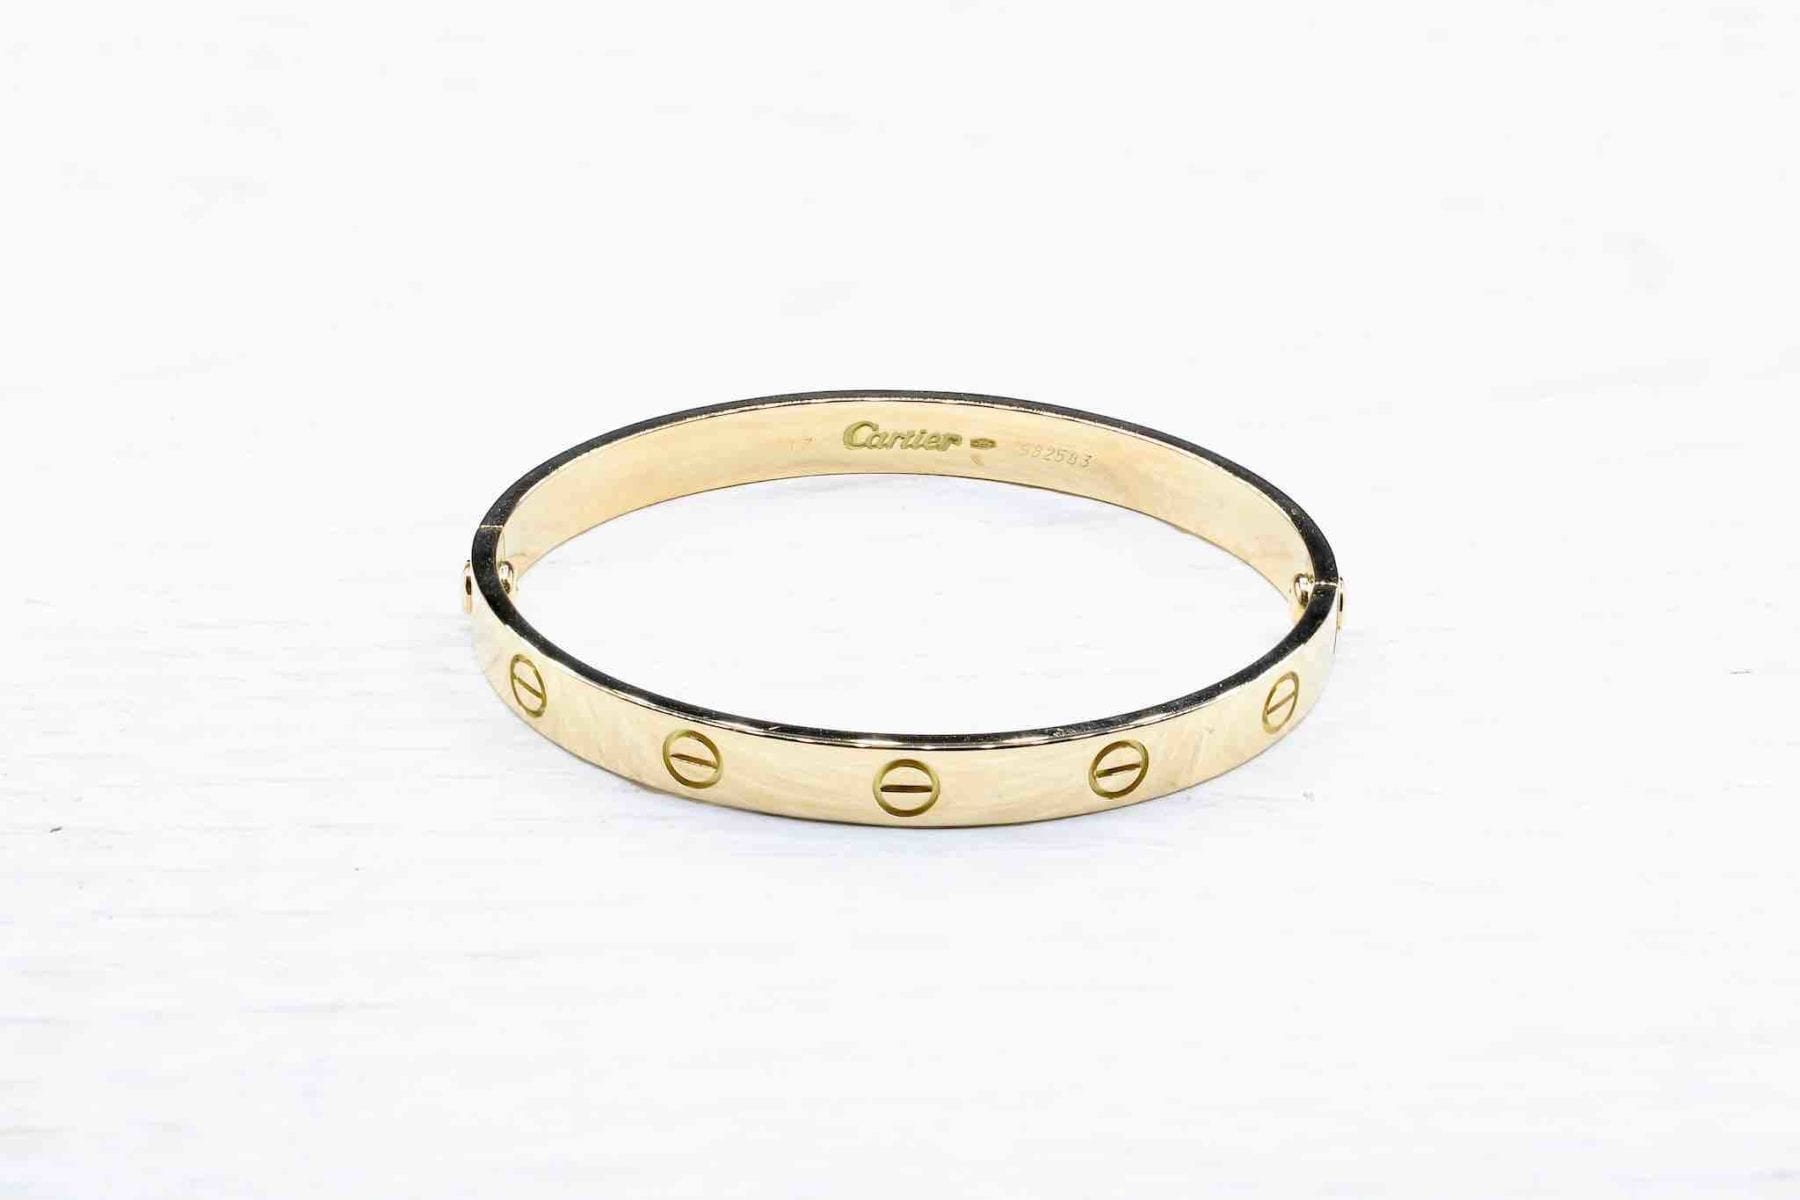 Bracelet Cartier Love en or jaune 18k